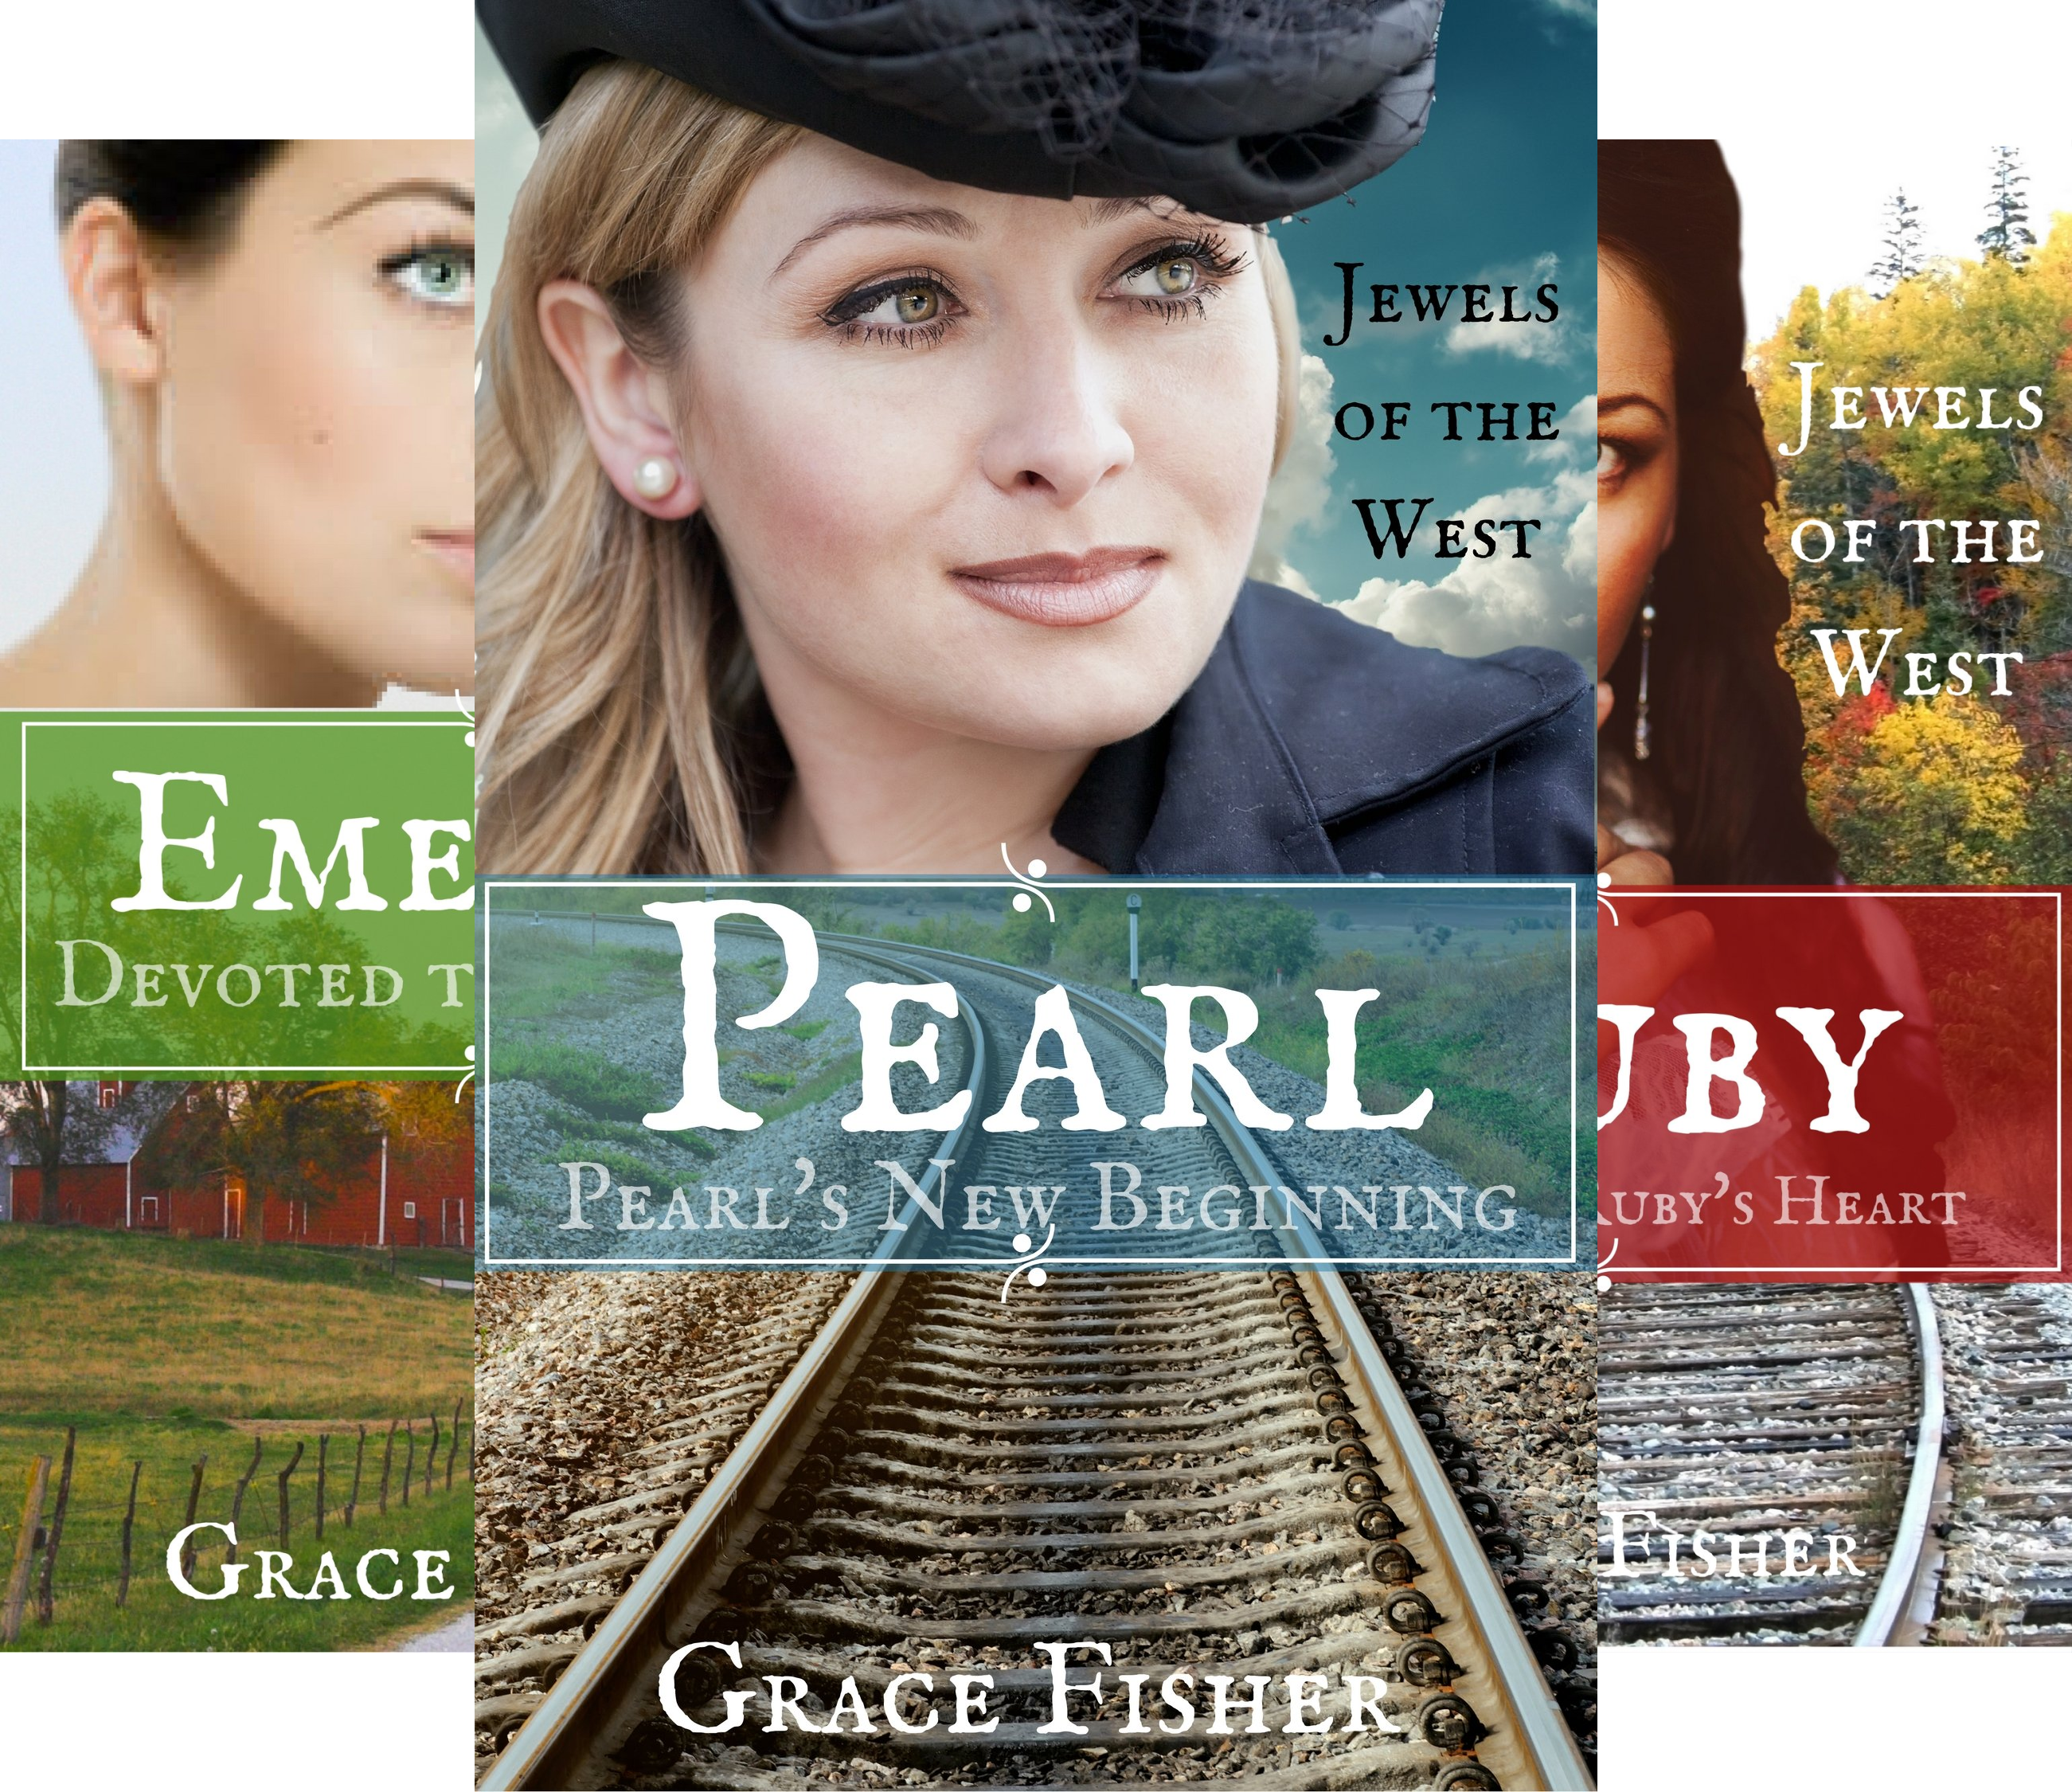 Mail Order Bride - Jewels of the West (6 Book Series)